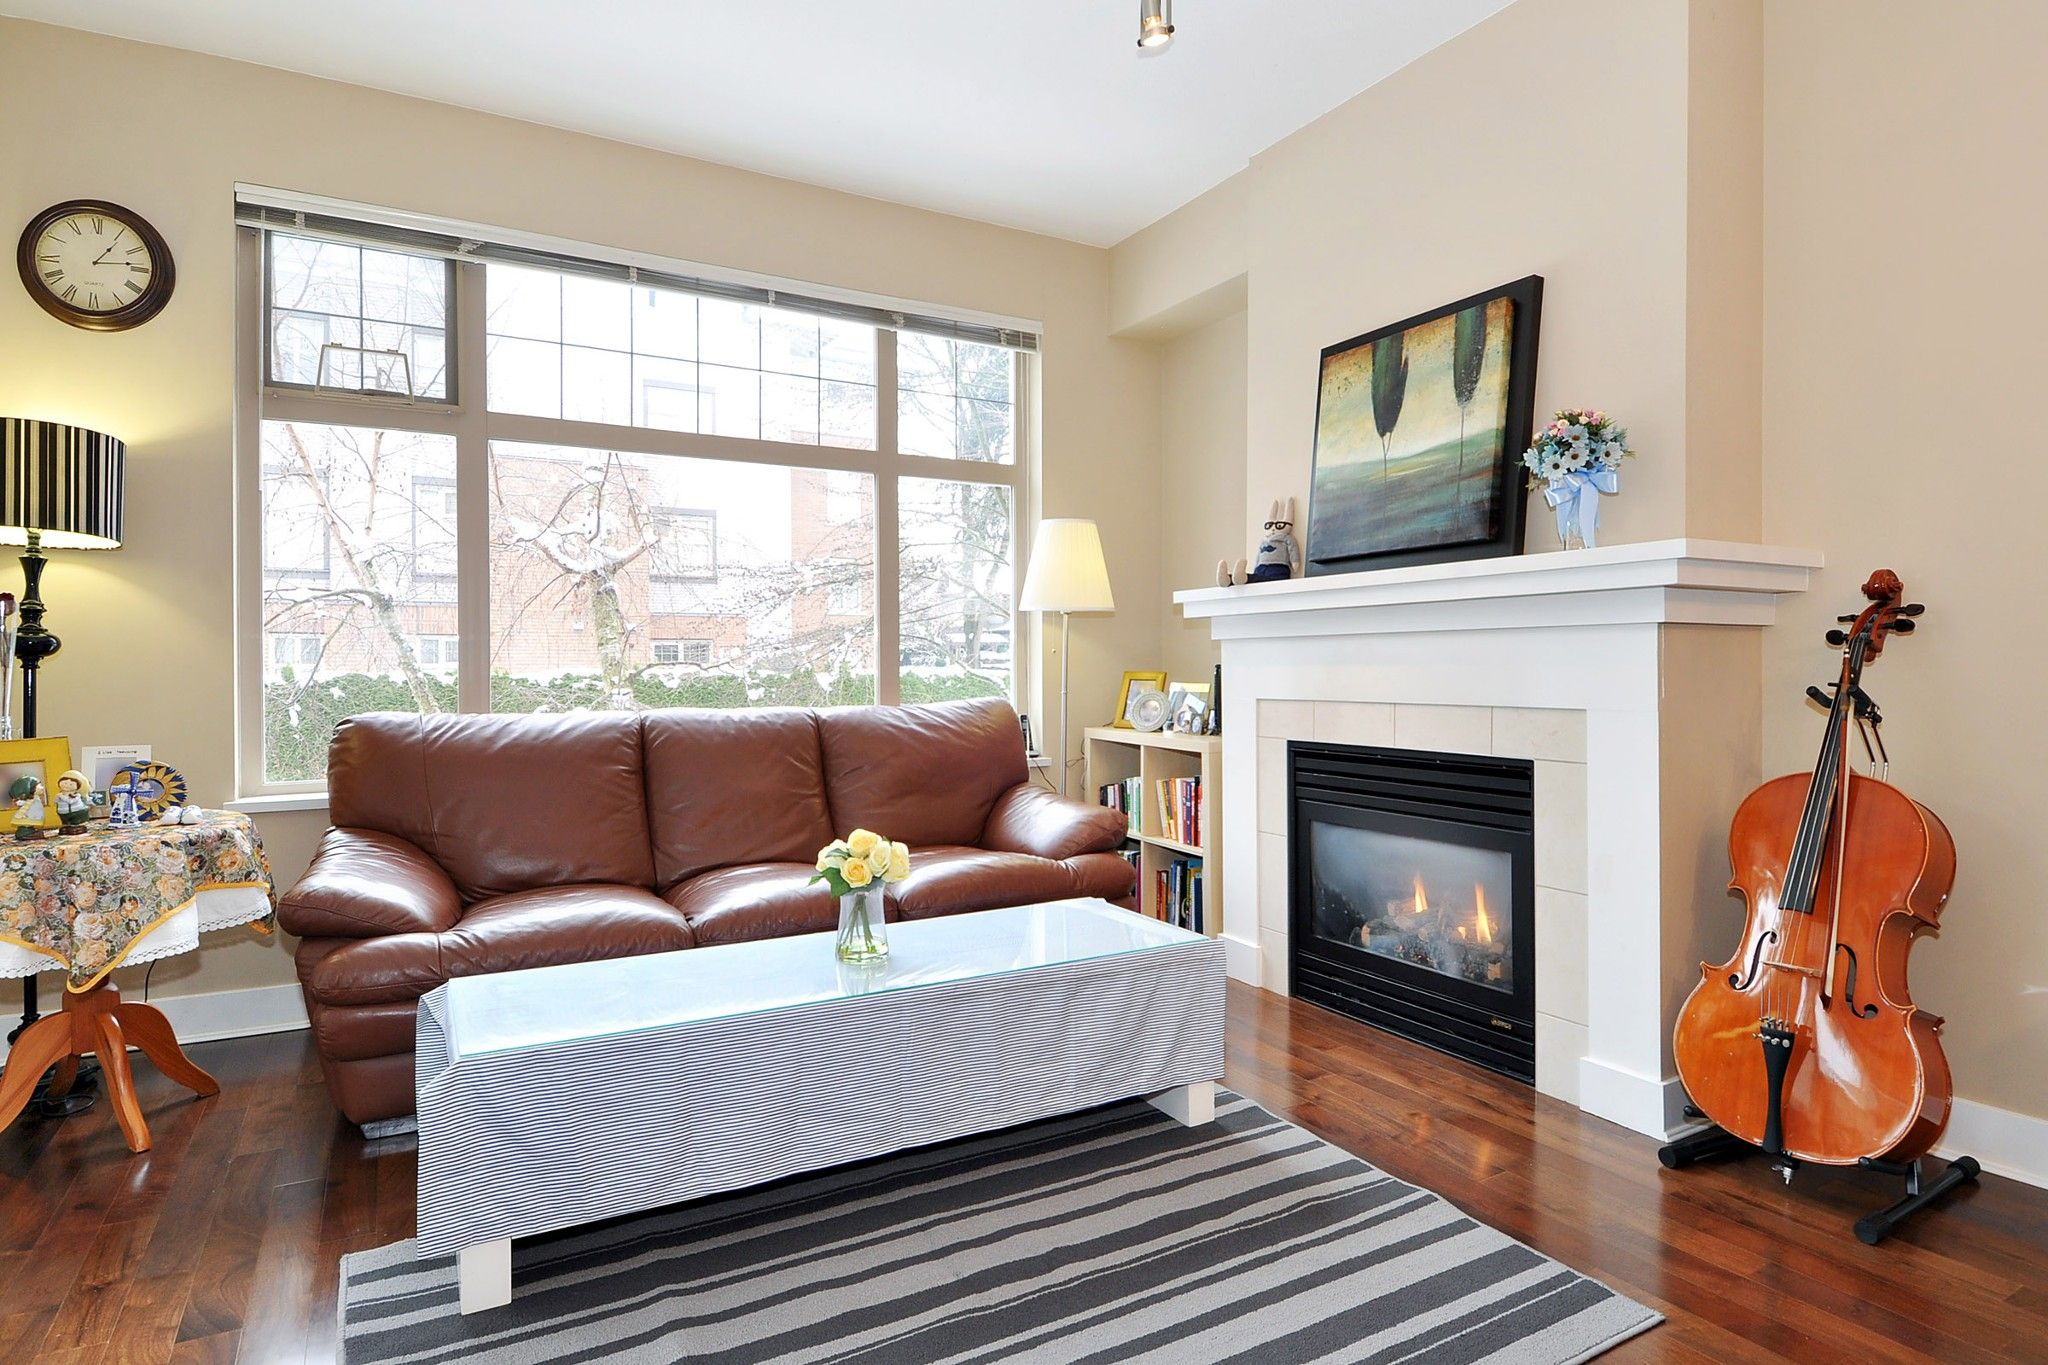 """Photo 2: Photos: 222 2083 W 33RD Avenue in Vancouver: Quilchena Condo for sale in """"DEVONSHIRE HOUSE"""" (Vancouver West)  : MLS®# R2341234"""